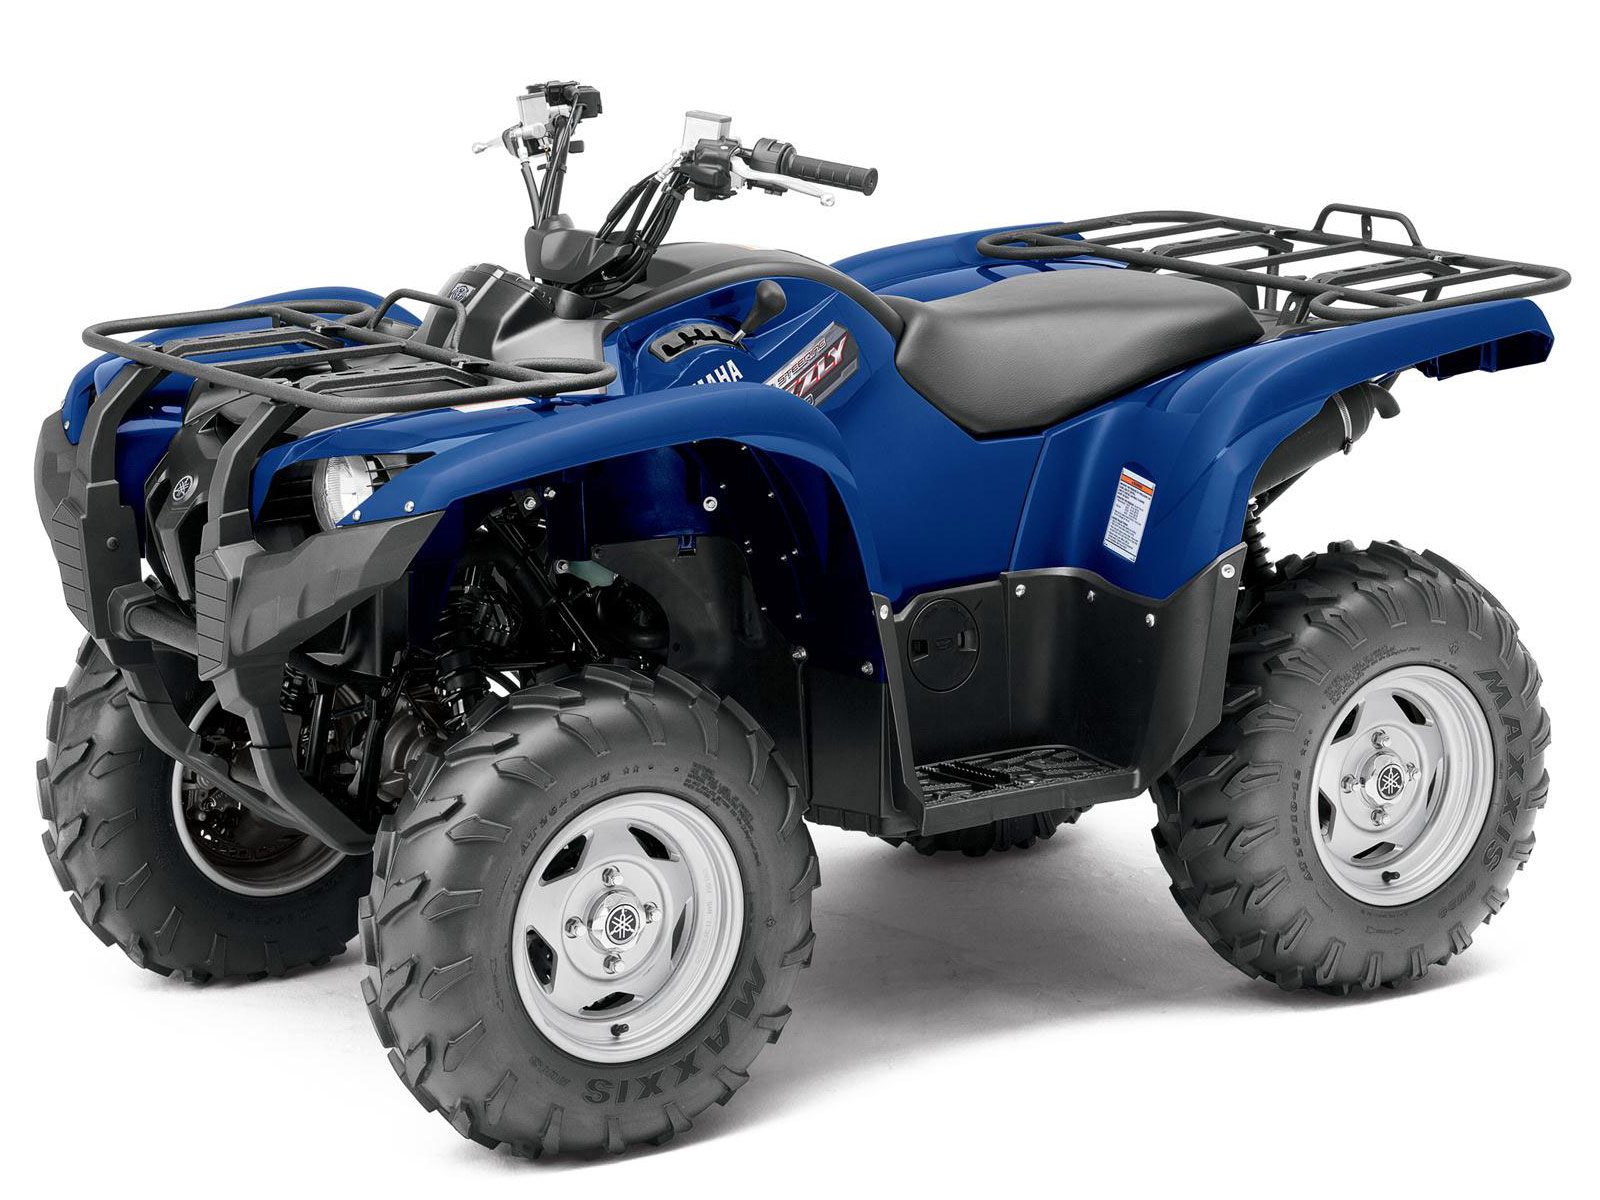 atv pictures 2013 yamaha grizzly 700 fi auto 4x4 eps. Black Bedroom Furniture Sets. Home Design Ideas